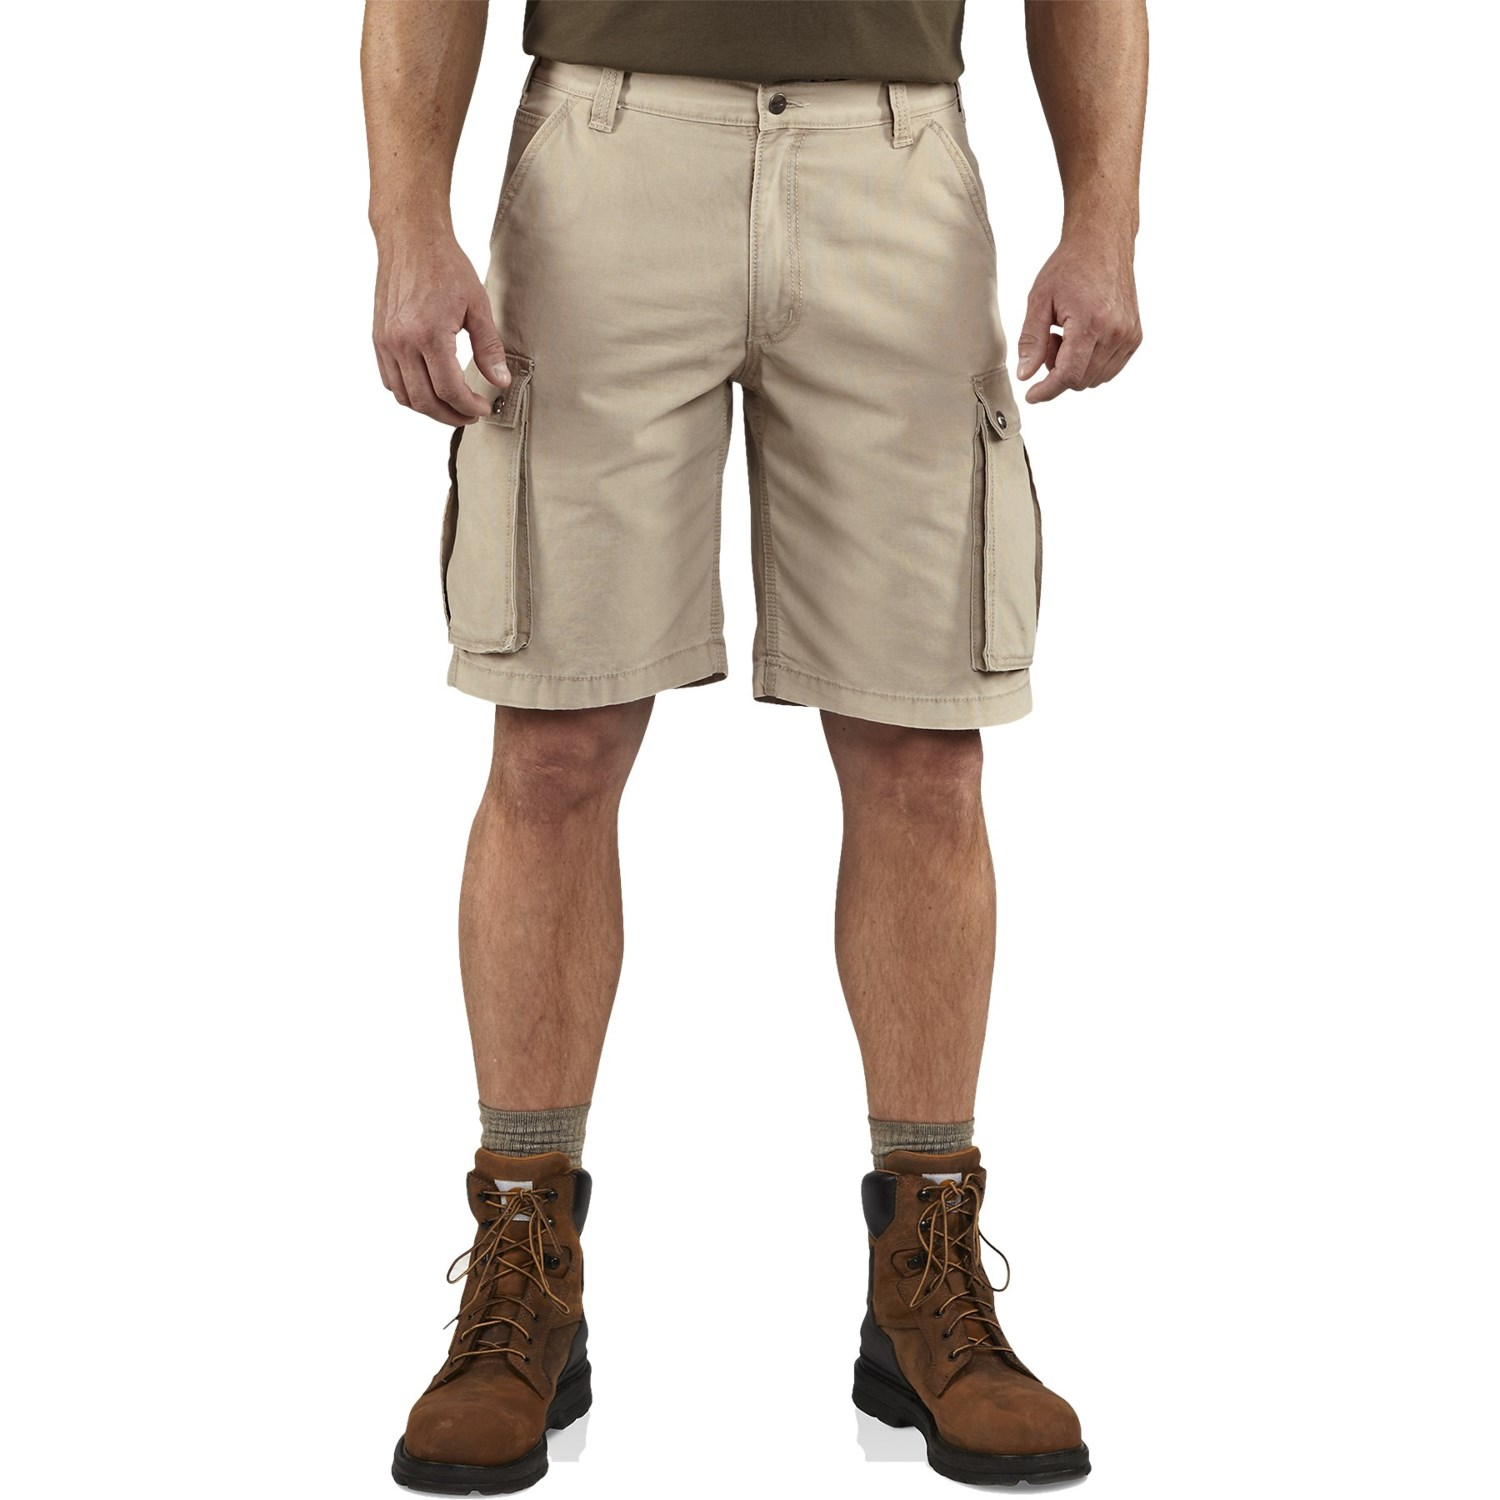 Shop for cargo pants short men online at Target. Free shipping on purchases over $35 and save 5% every day with your Target REDcard.